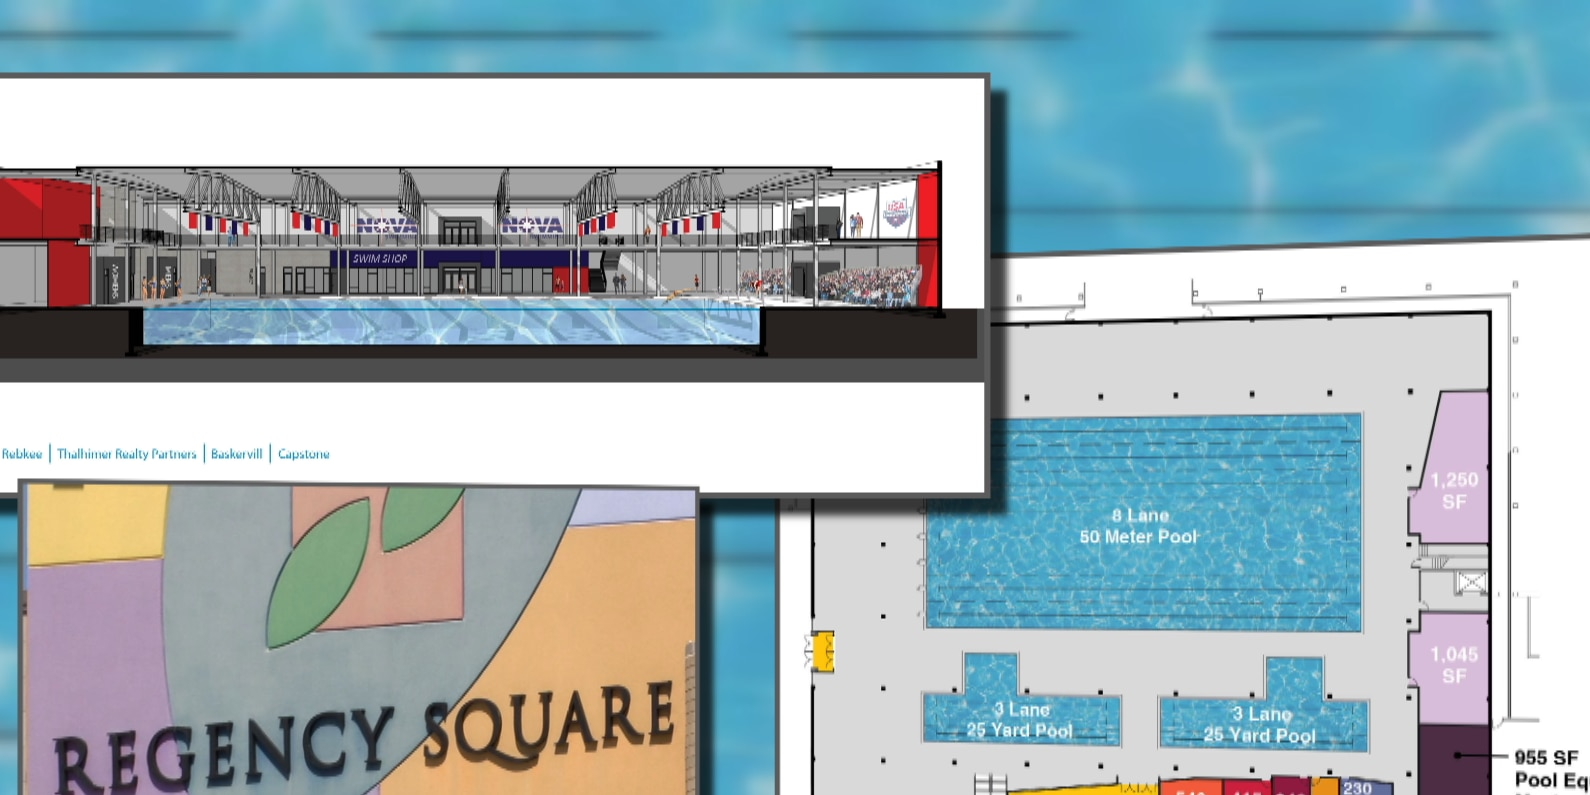 New aquatic center to replace Macy's at Regency Square